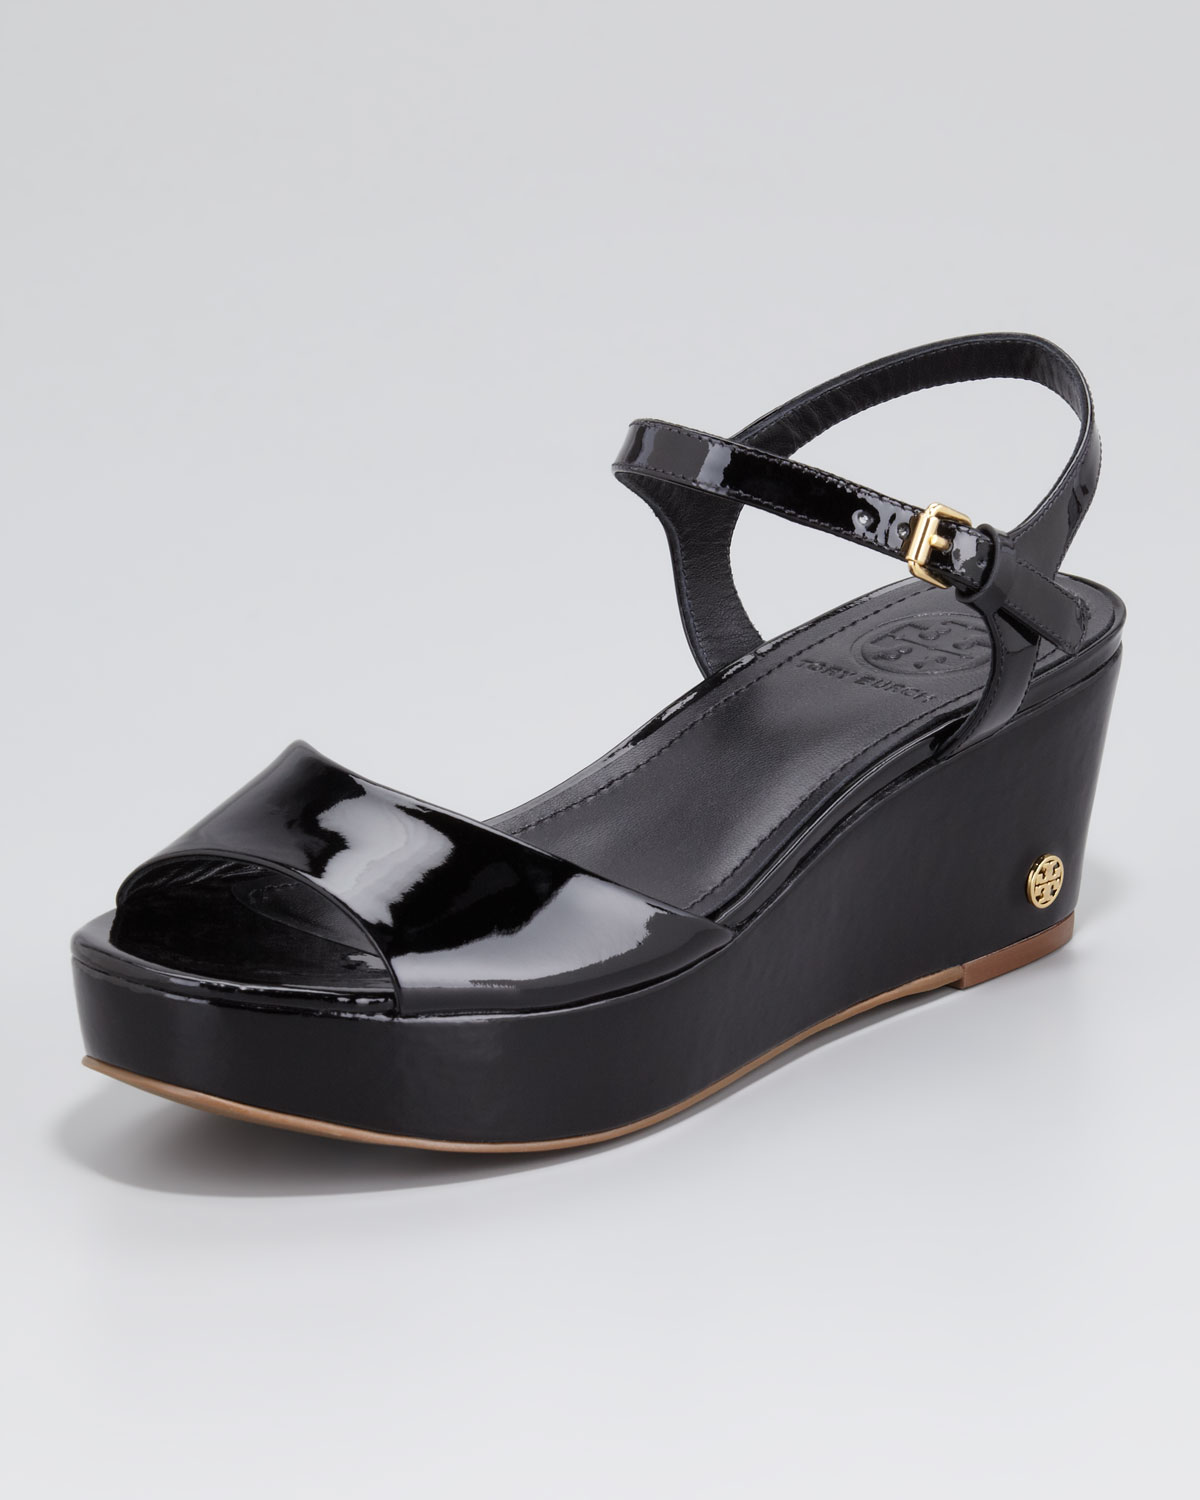 Lyst Tory Burch Abena Flatform Wedge Sandal In Black